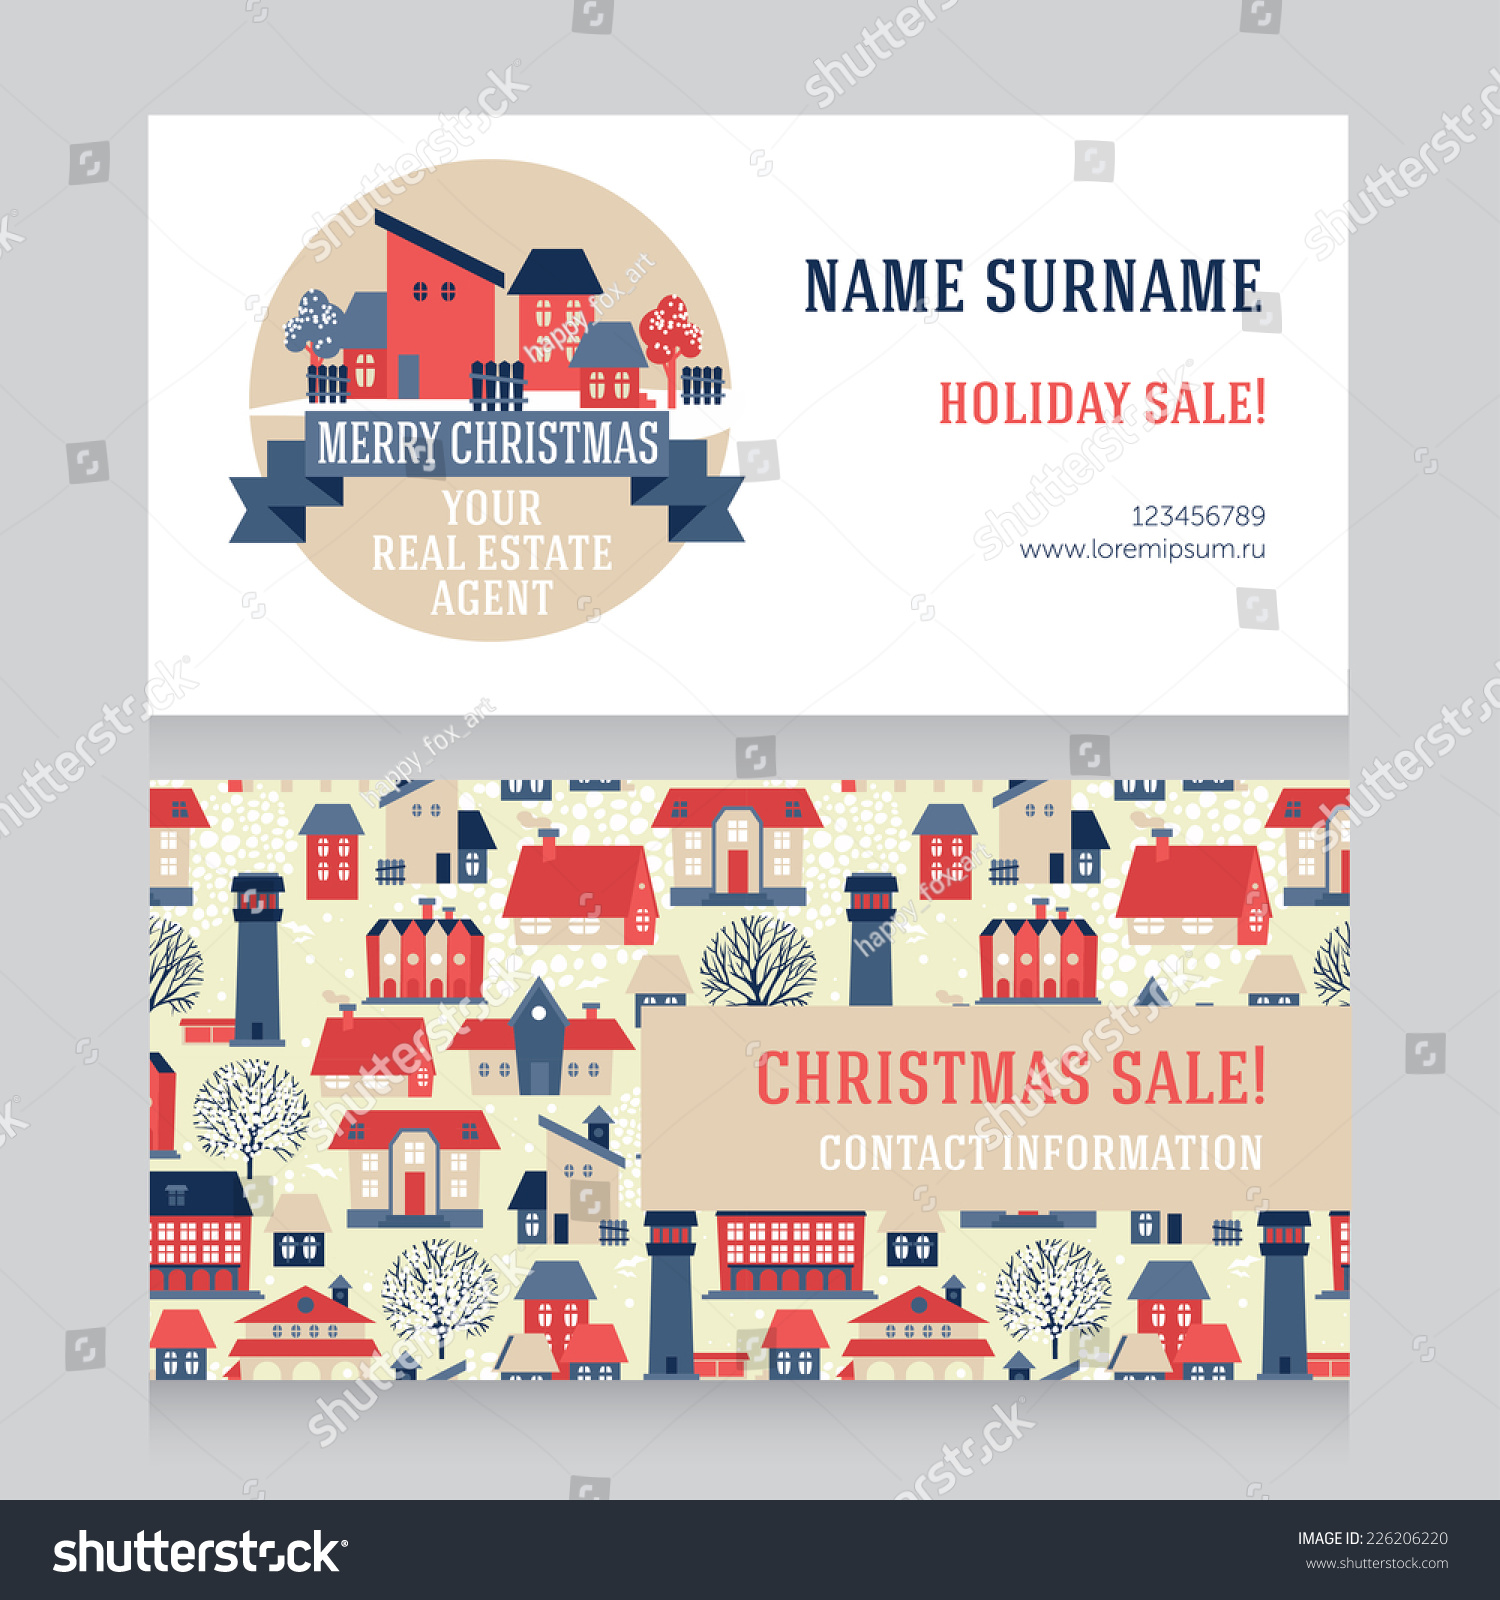 design template real estate agent business stock vector